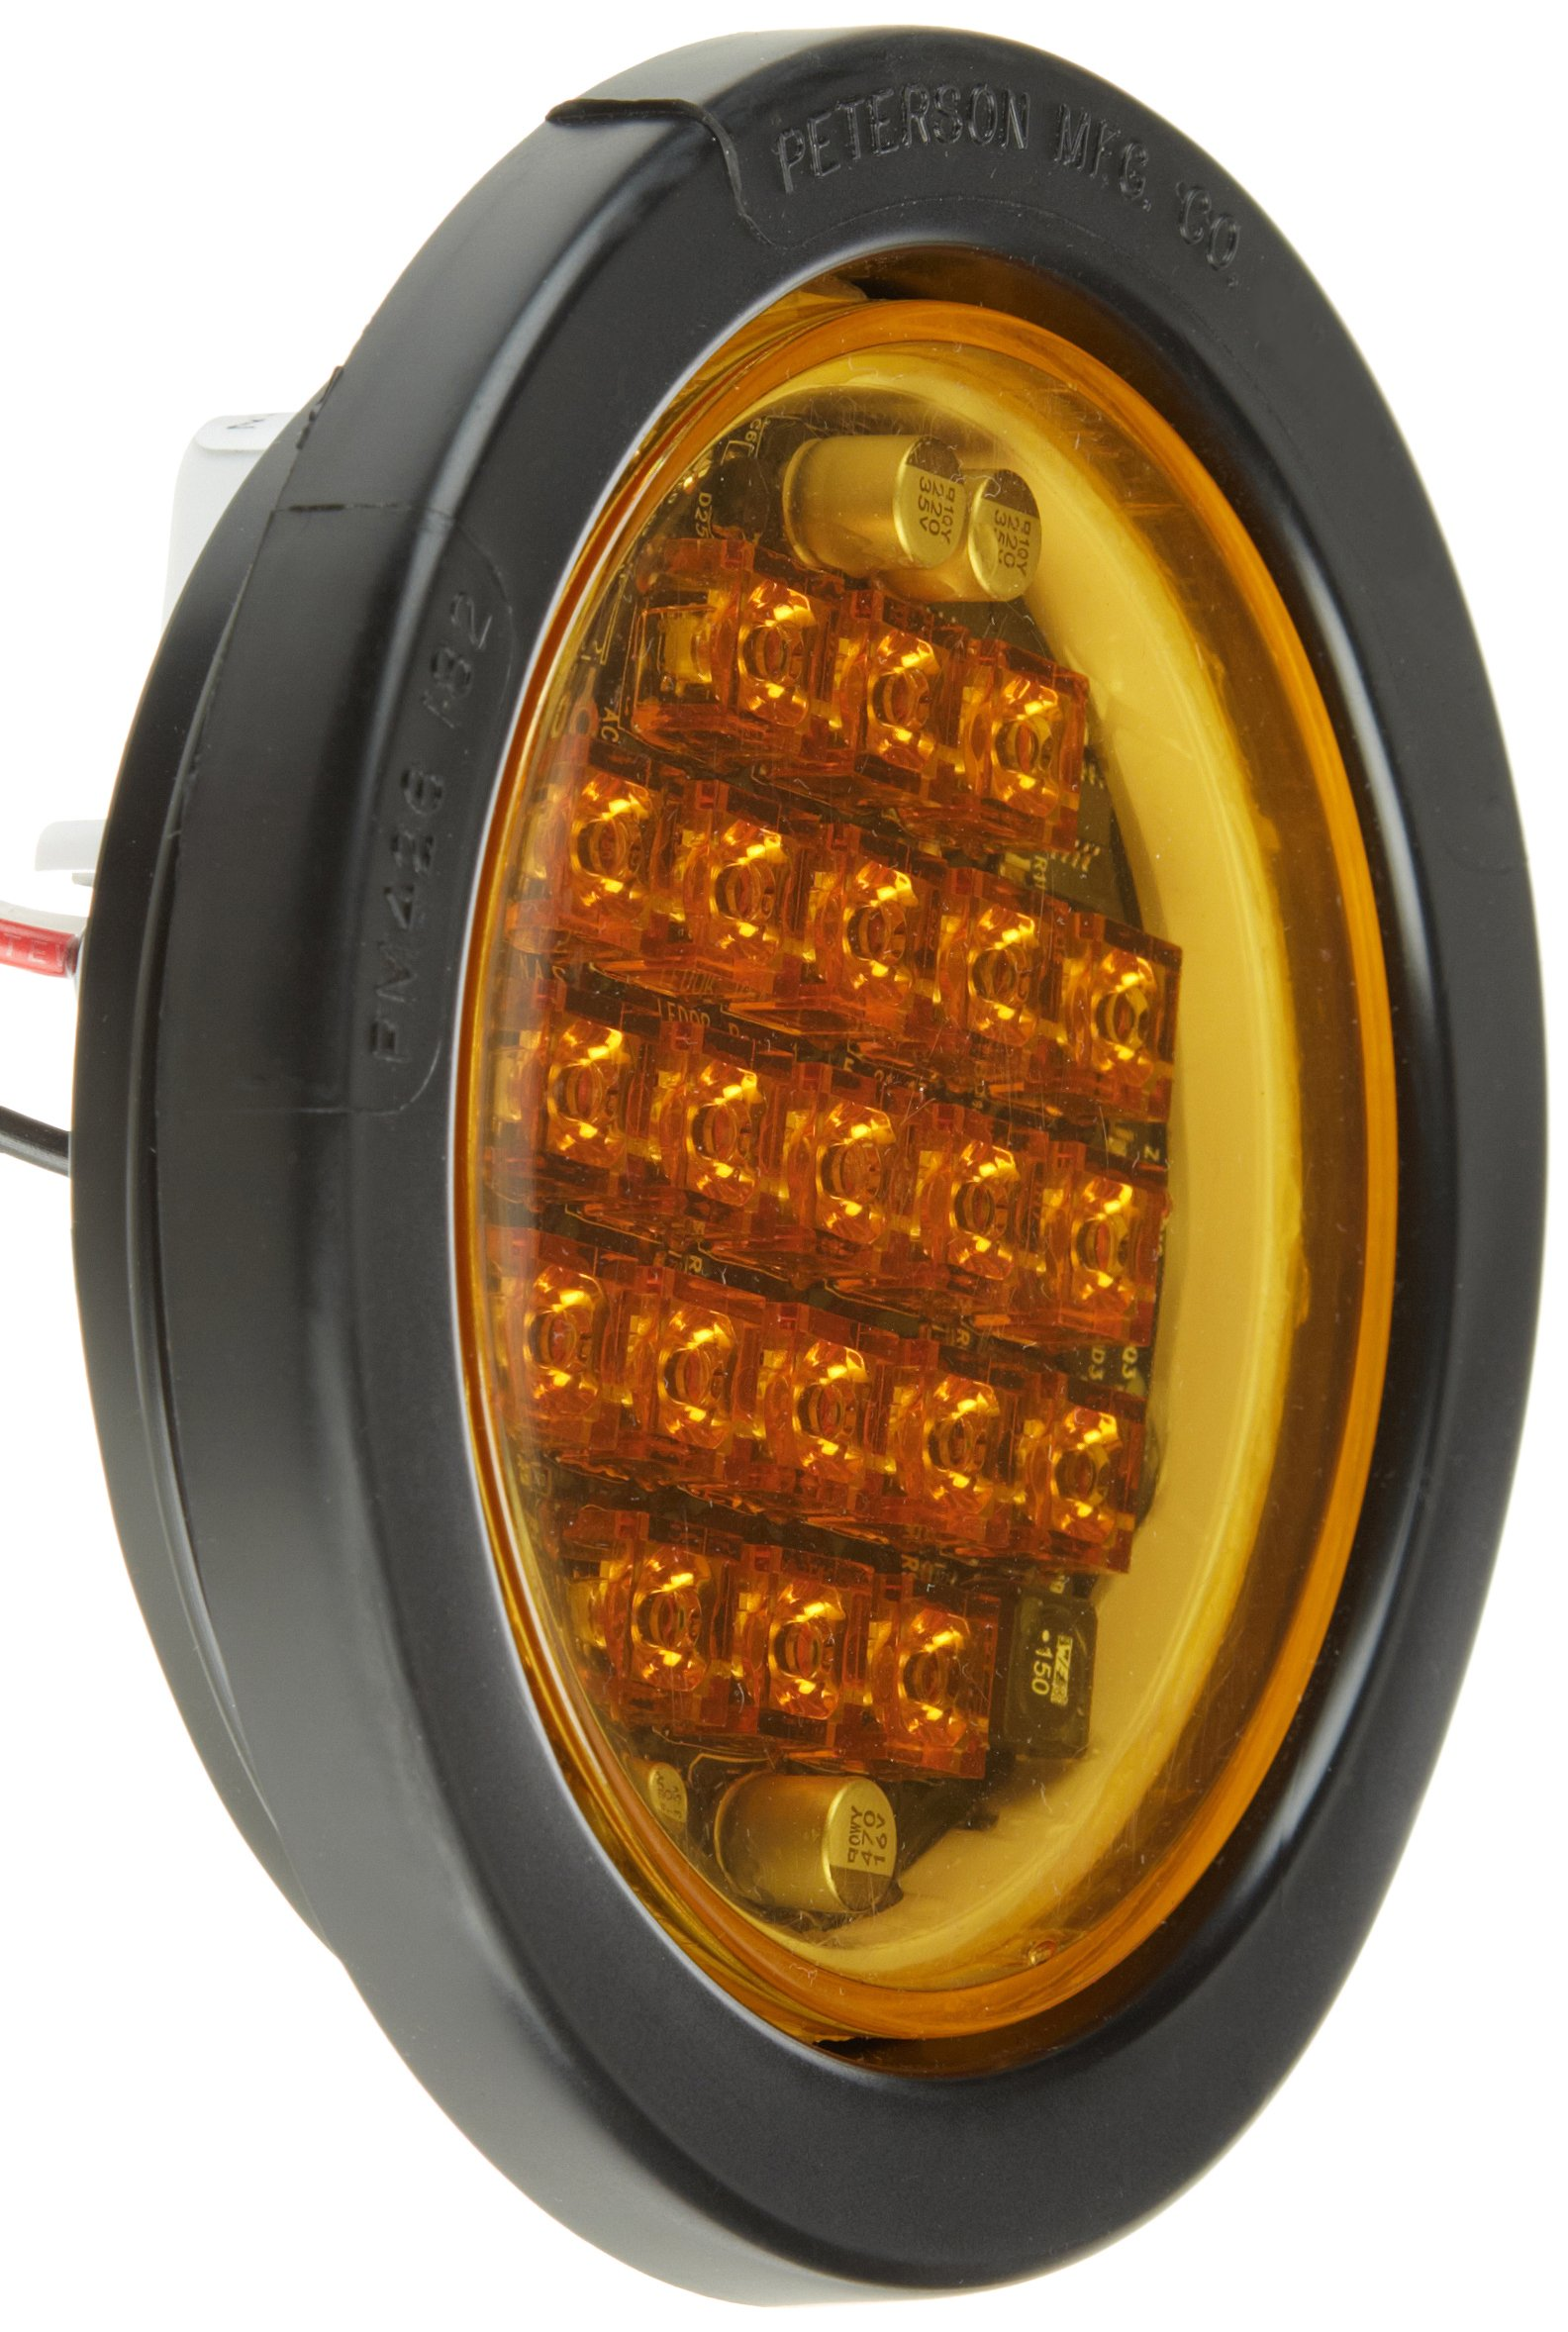 North American Signal LEDQR-A LED Round Warning Light with Grommet Mount, 12/24V, 0.33A Current, Amber